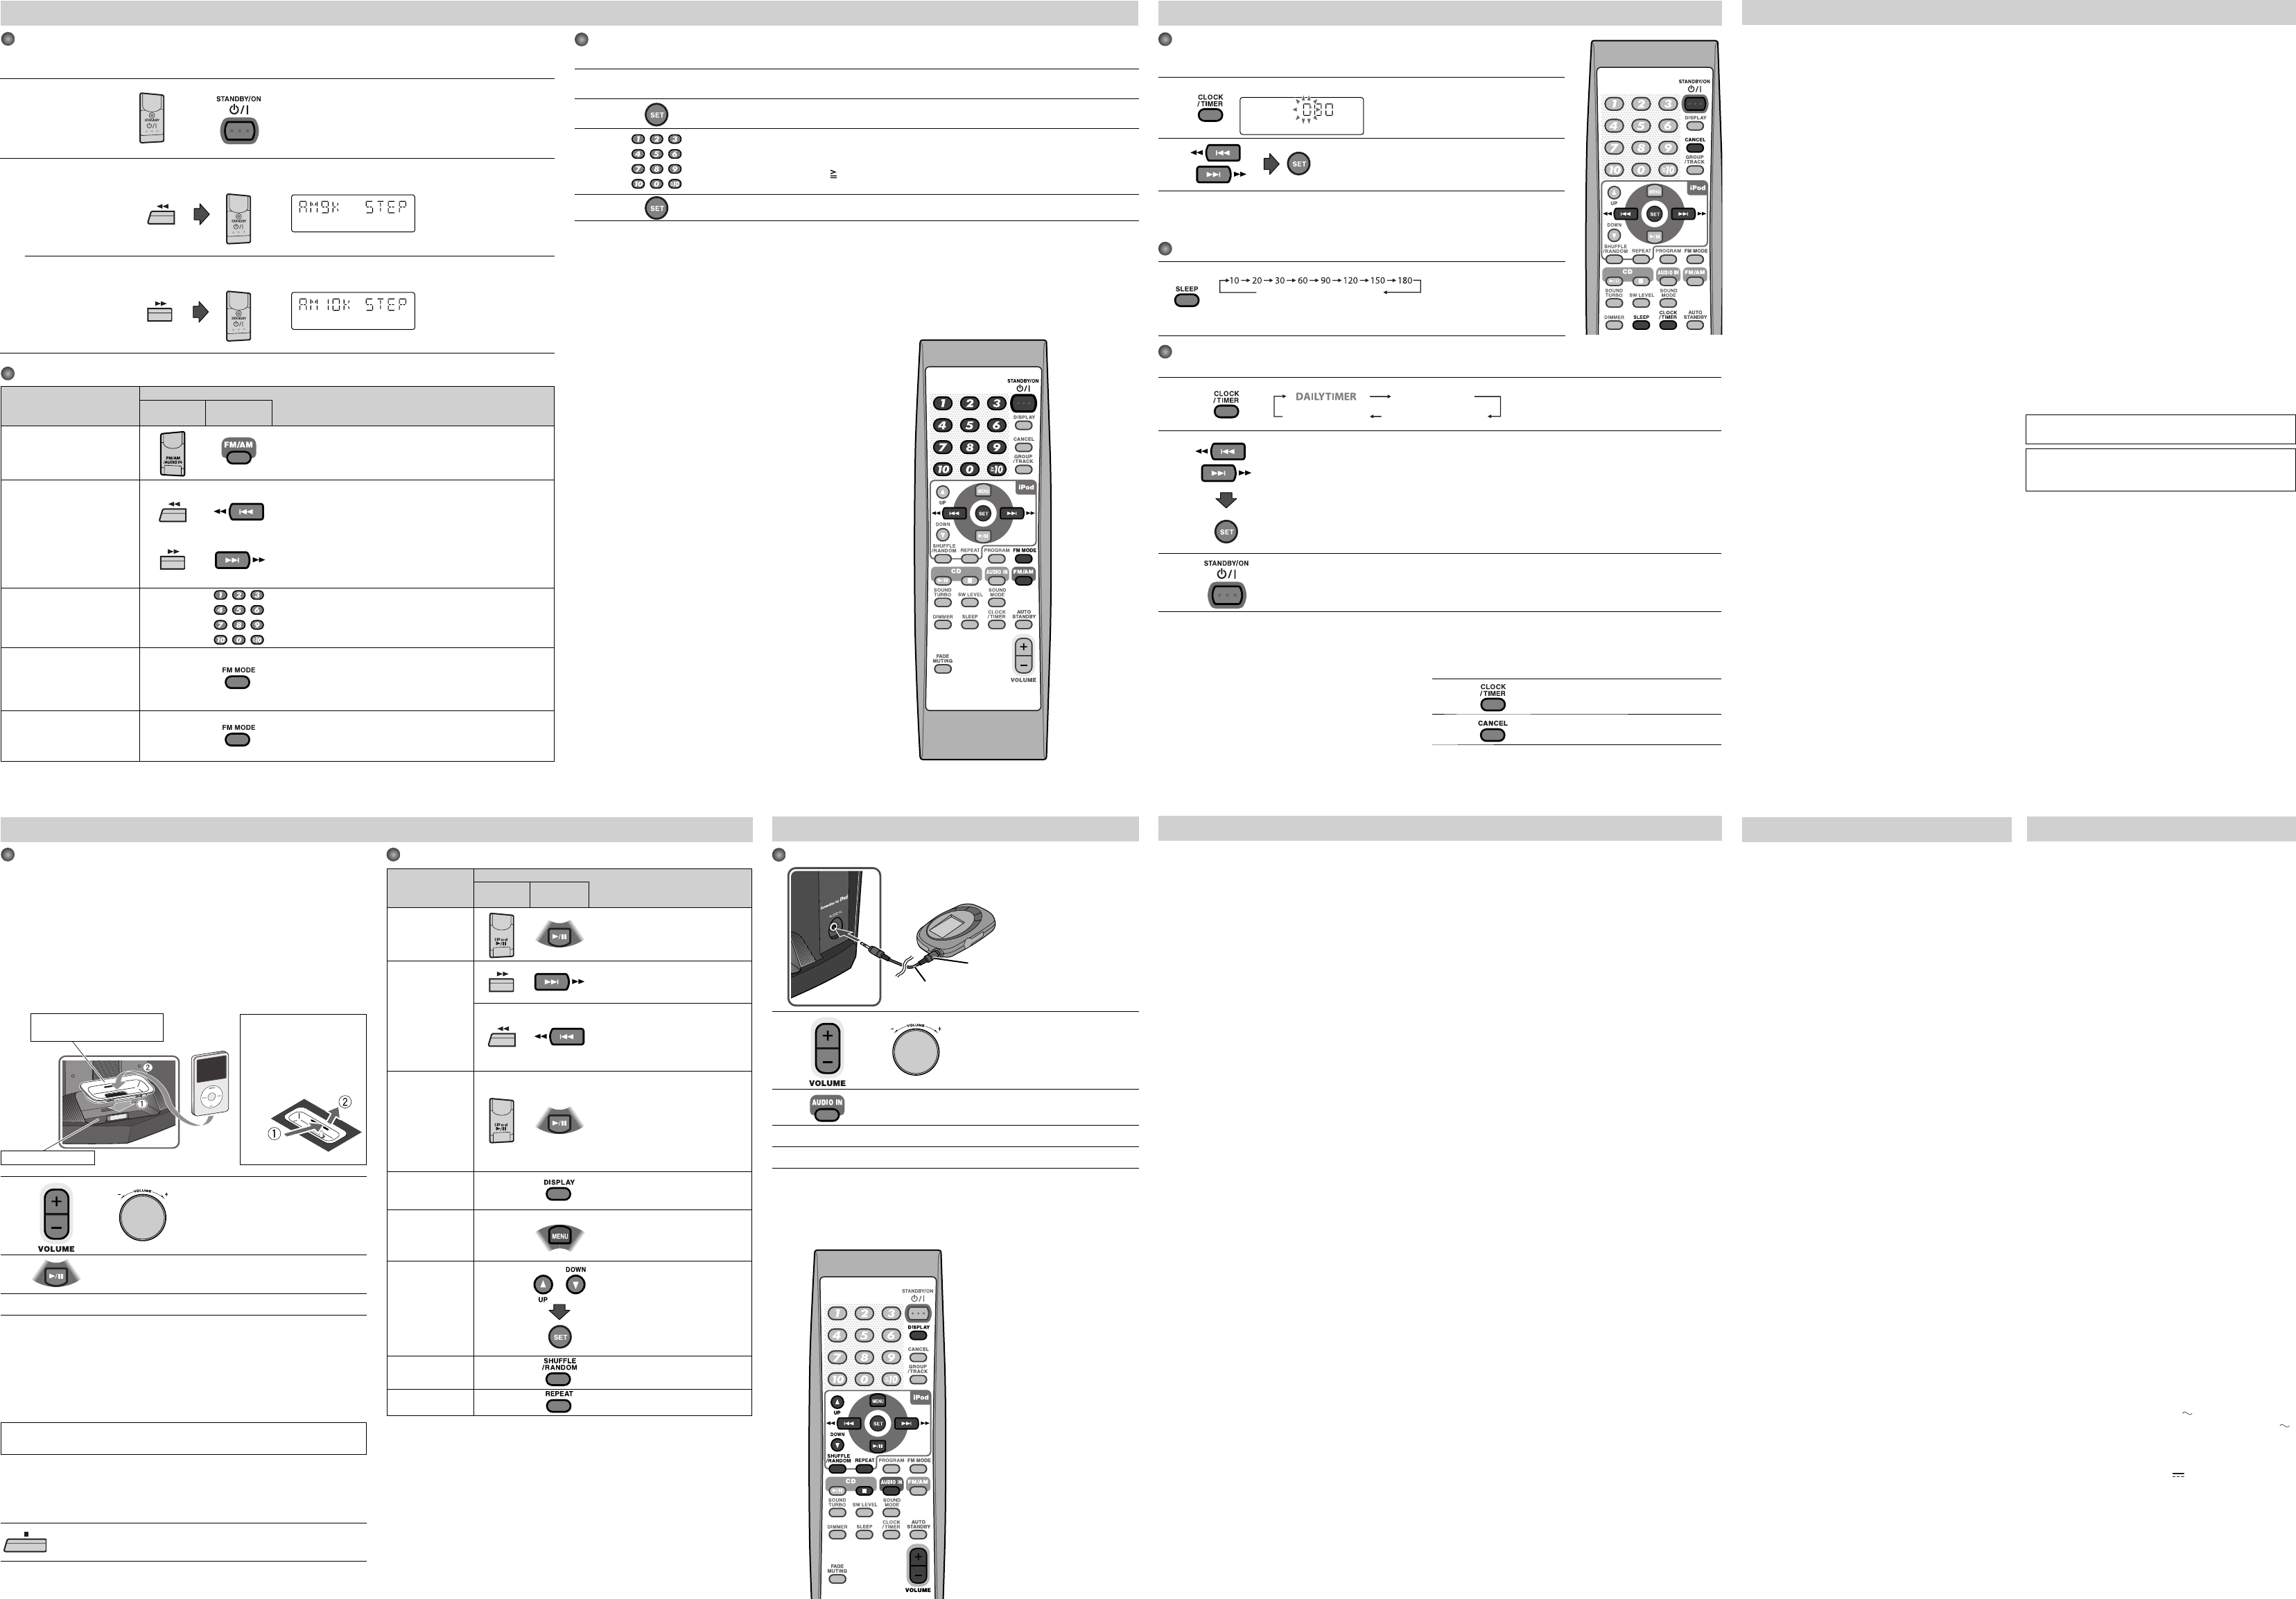 Page 2 of JVC Stereo System SP-MXKC68W User Guide